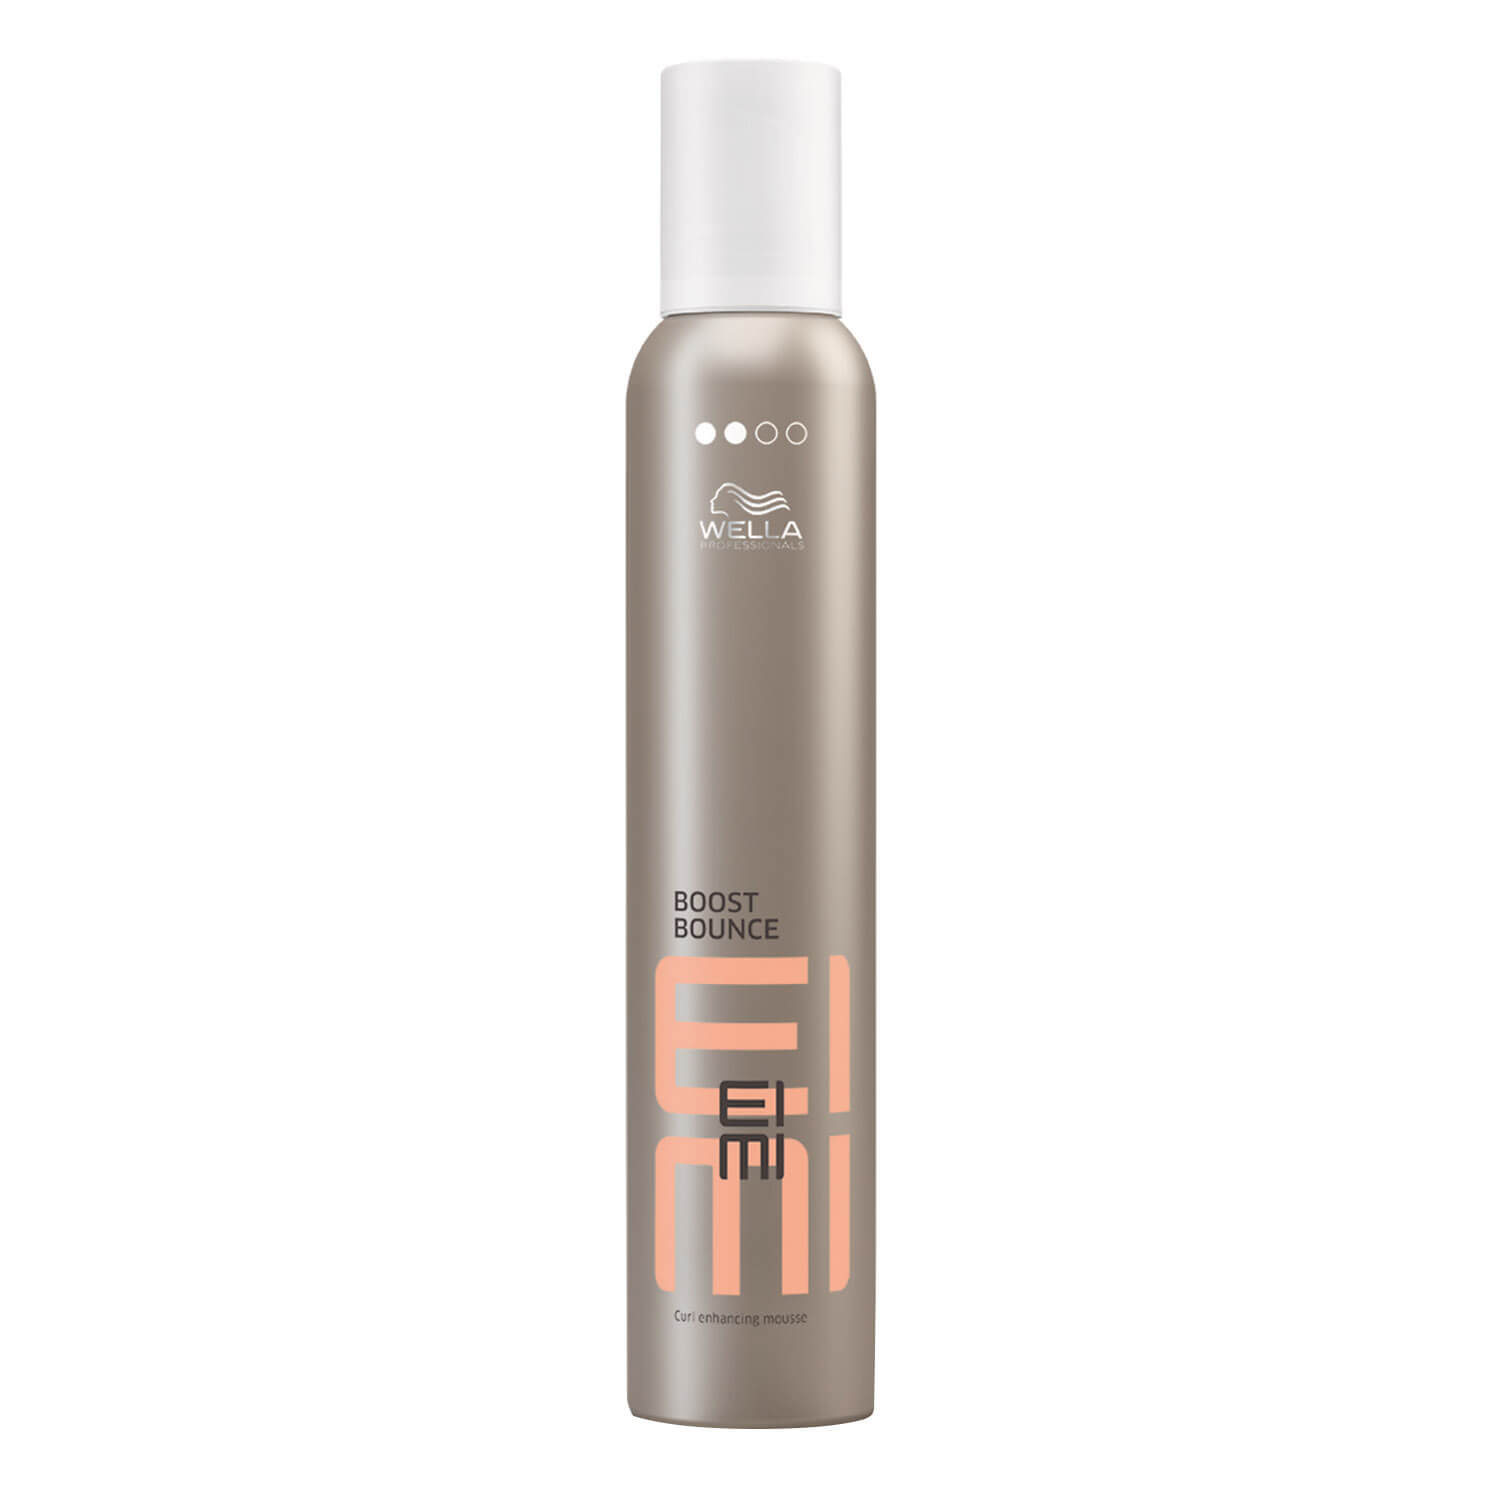 EIMI Volume - Boost Bounce - 300ml